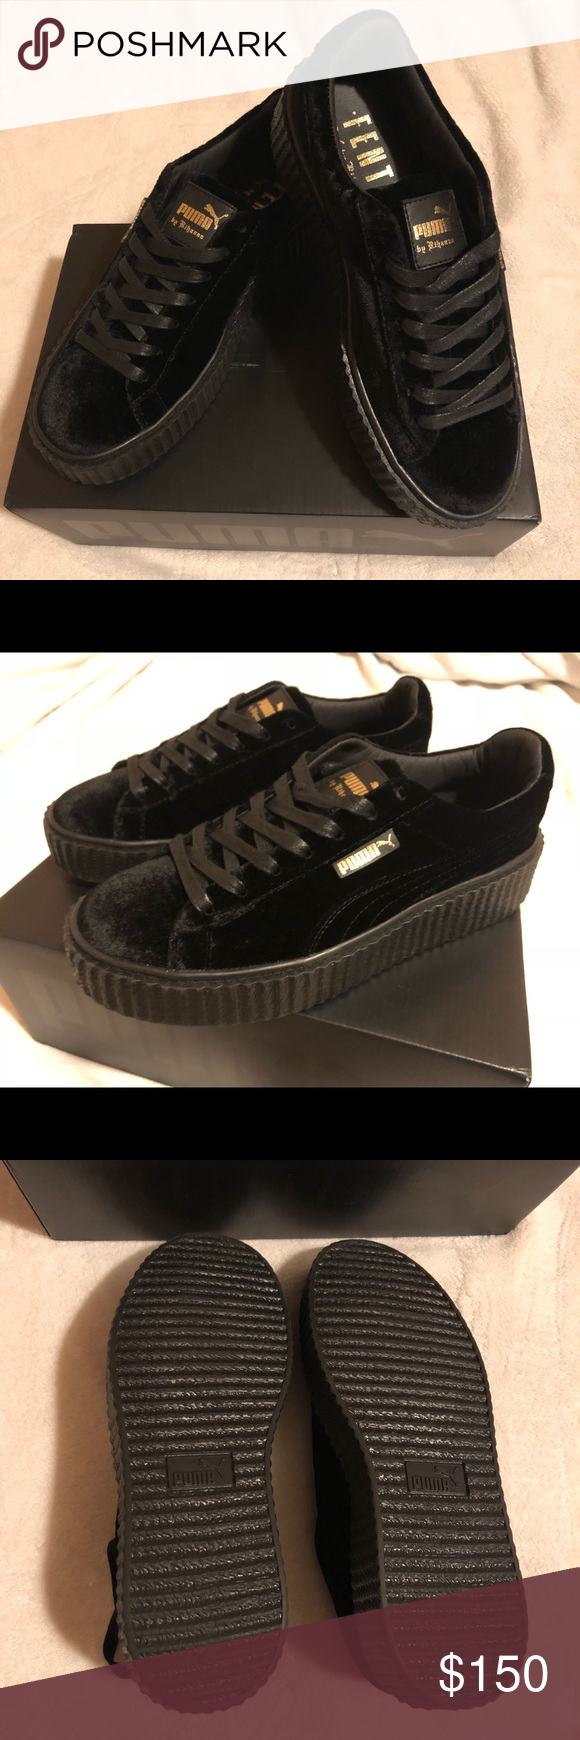 new product afdb0 d44eb Fenty By RiRi Creepers Brand New Shoes - Women's: 8.5 ...